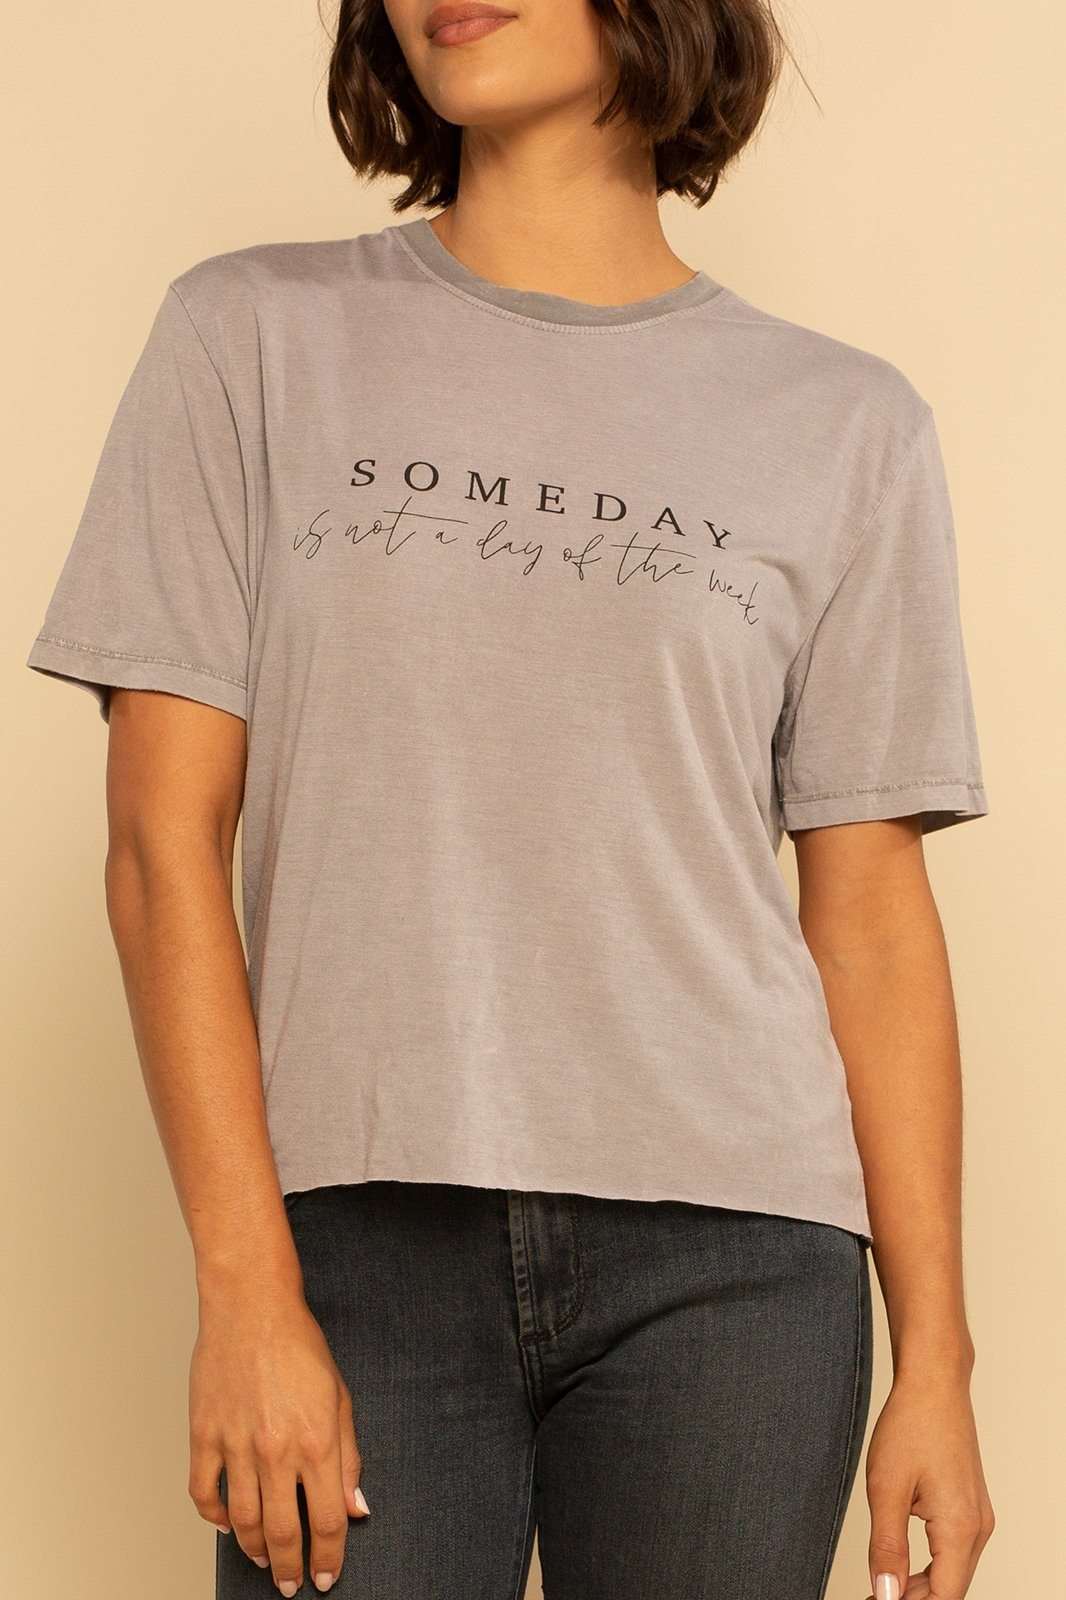 Someday Cropped Graphic Tee - Grey - Shore